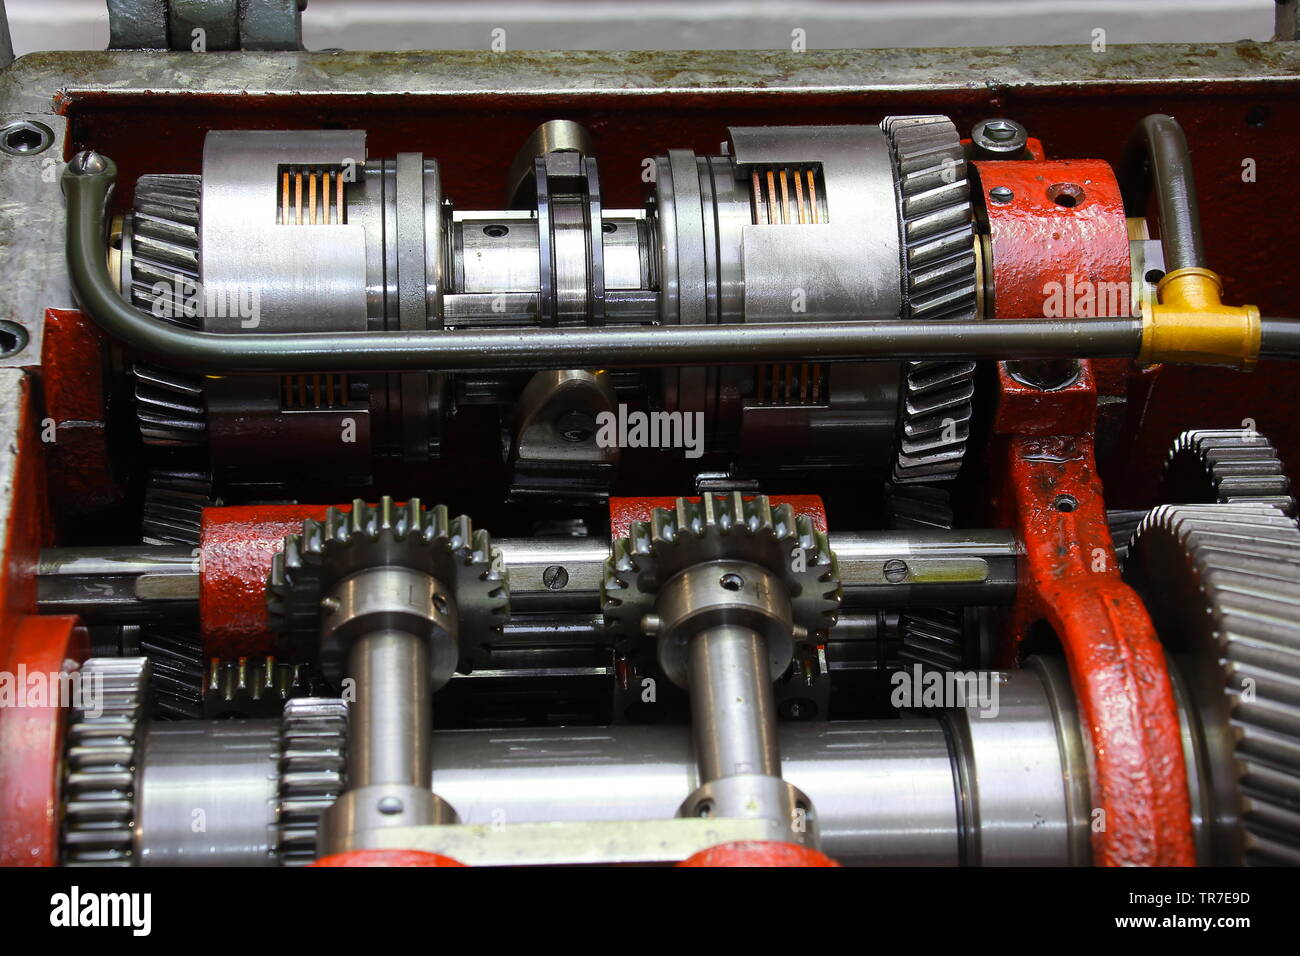 Under the bonnet of a Henry Milnes 13 inch swing gap bed lathe showing the clutch assembly unit with direction selector and general picture of gears. - Stock Image